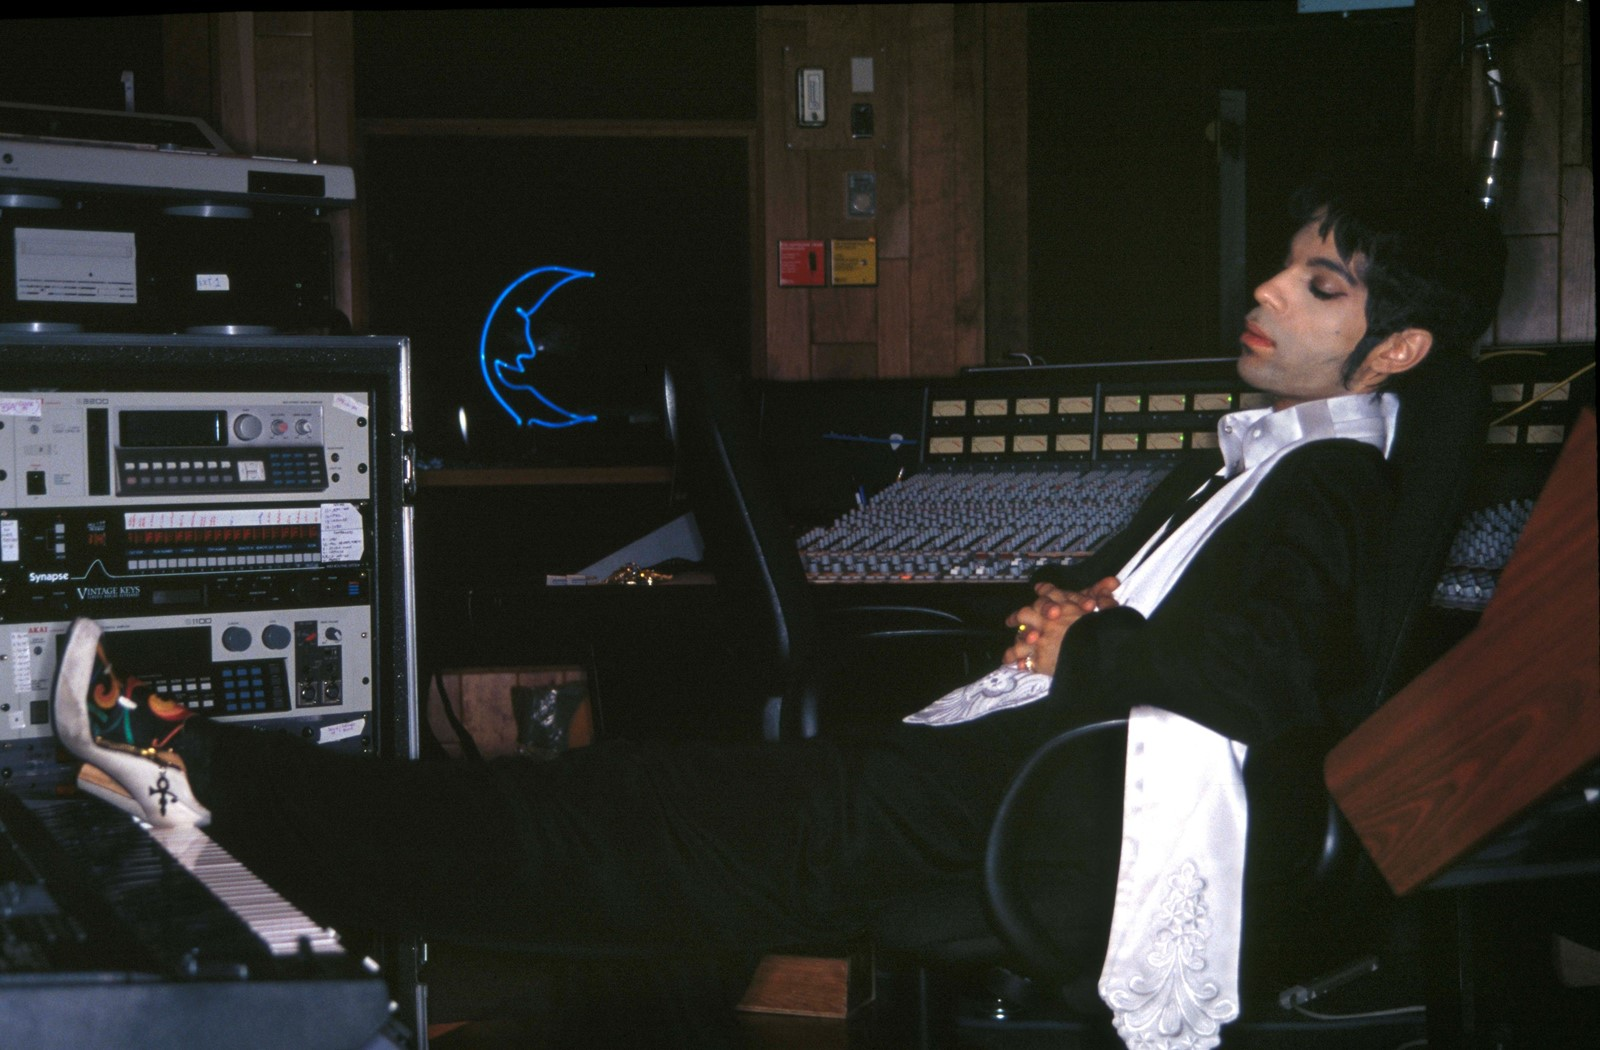 Prince at Paisely